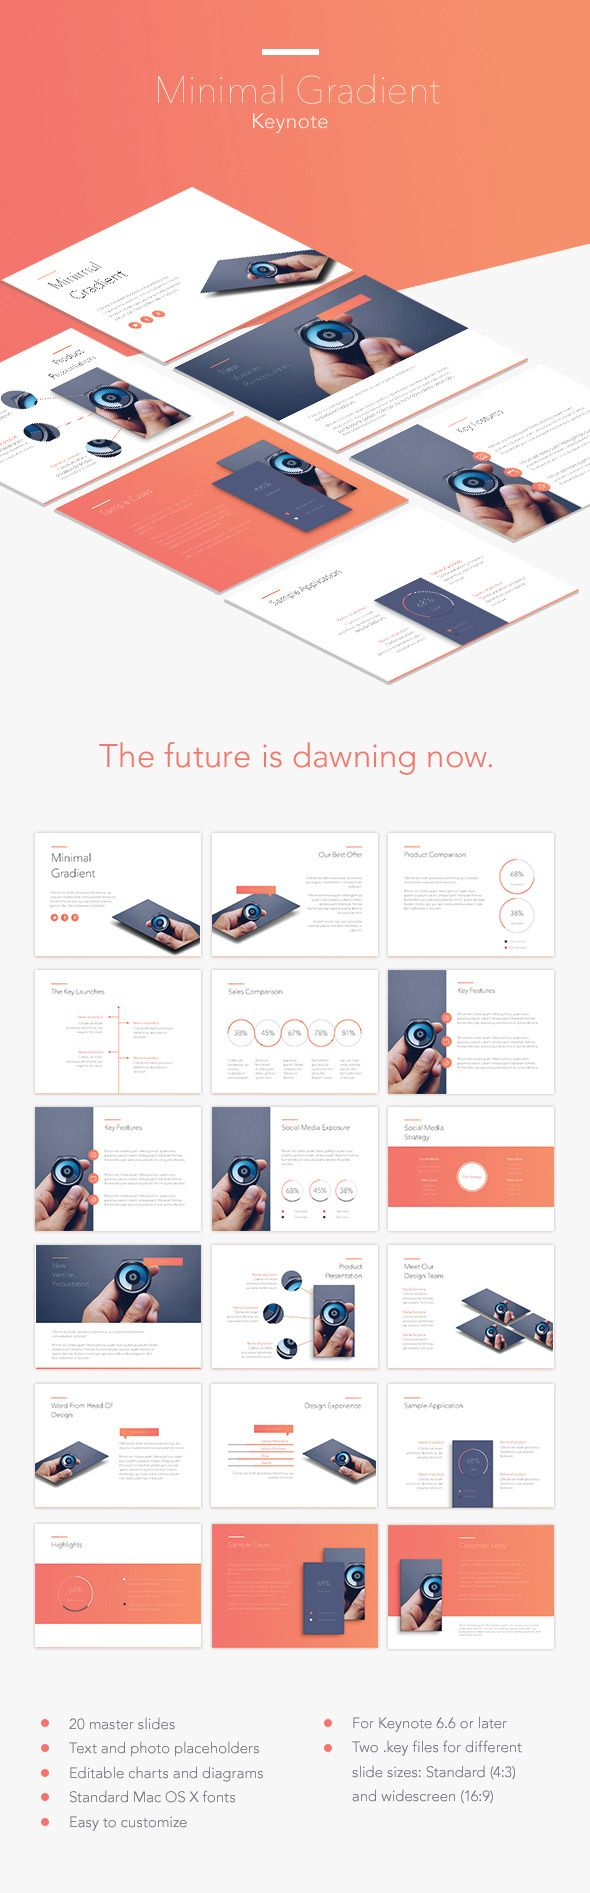 Minimal Gradient Keynote Template #design #slides Download: http://graphicriver.net/item/minimal-gradient-keynote-template/13745342?ref=ksioks